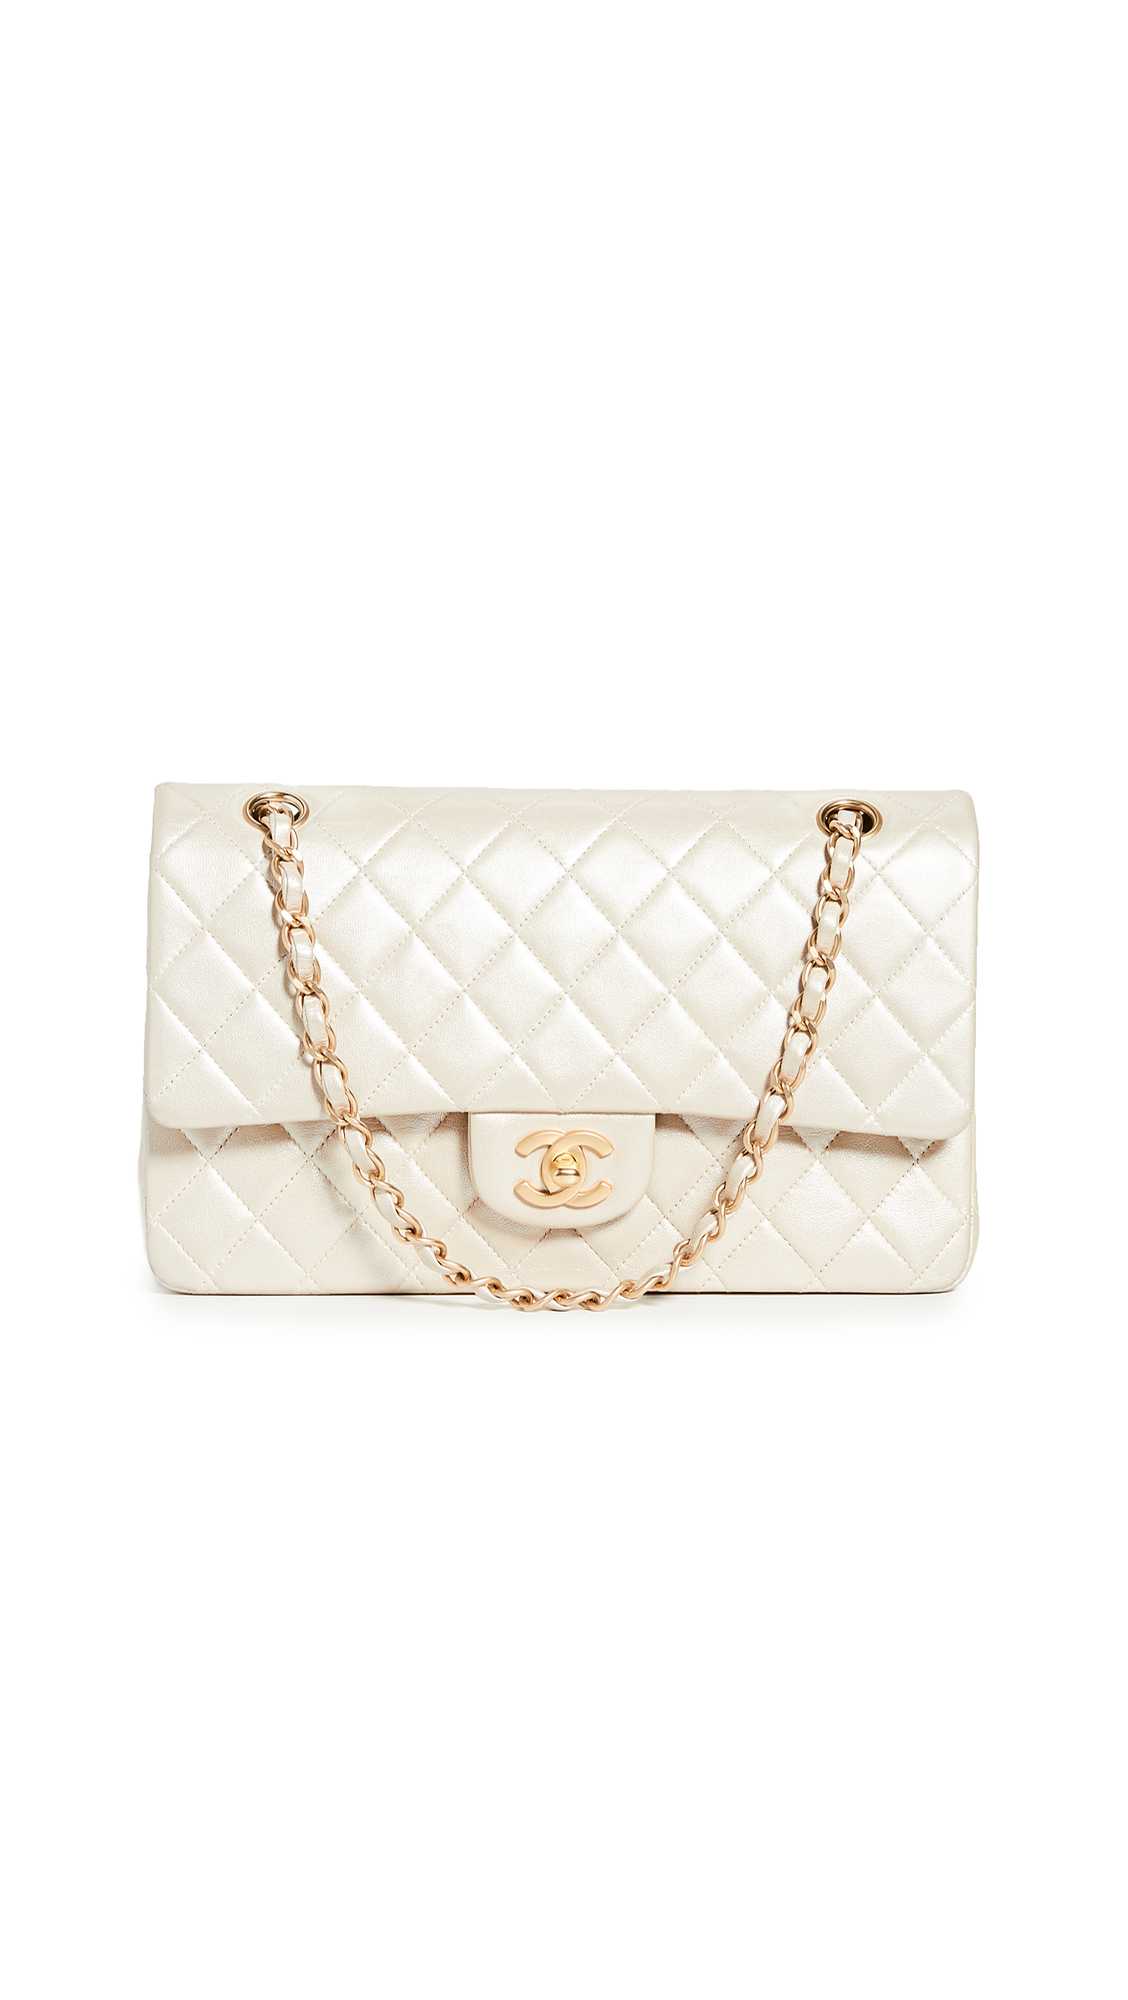 14c33d66116d WHAT GOES AROUND COMES AROUND | What Goes Around Comes Around Chanel Gold  2.55 10 Bag. SHOP